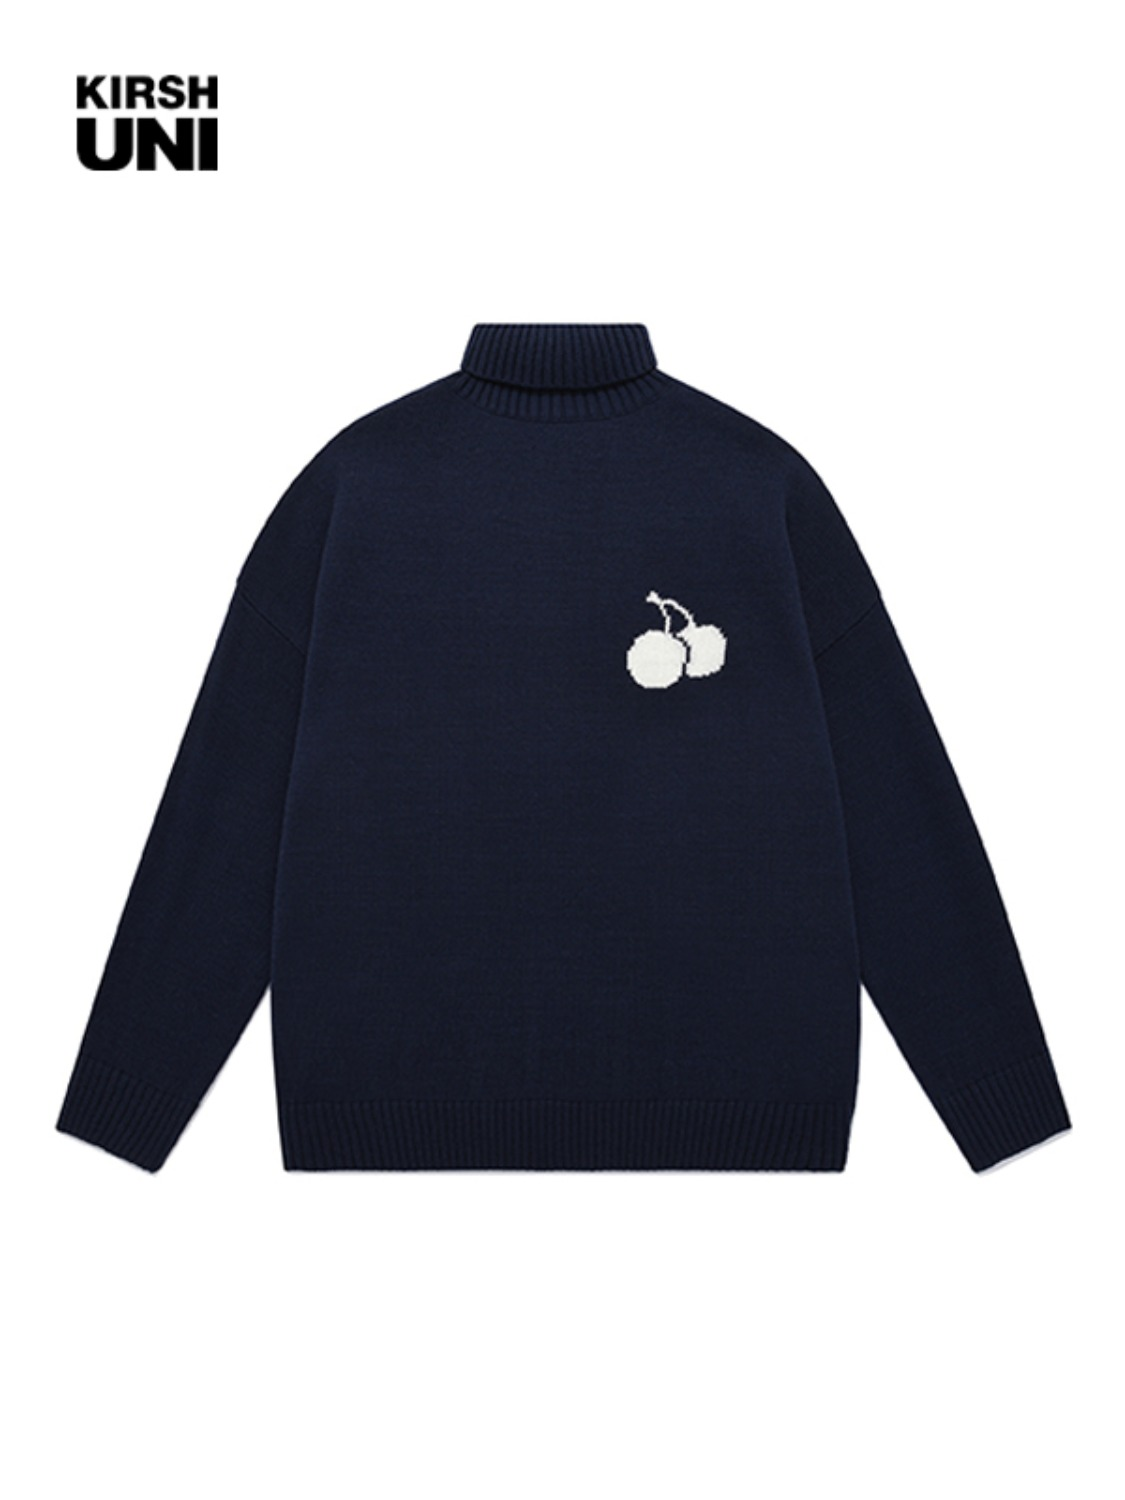 (11월 13일 예약발송)UNI MIDDLE CHERRY HIGHNECK KNIT JA [NAVY]